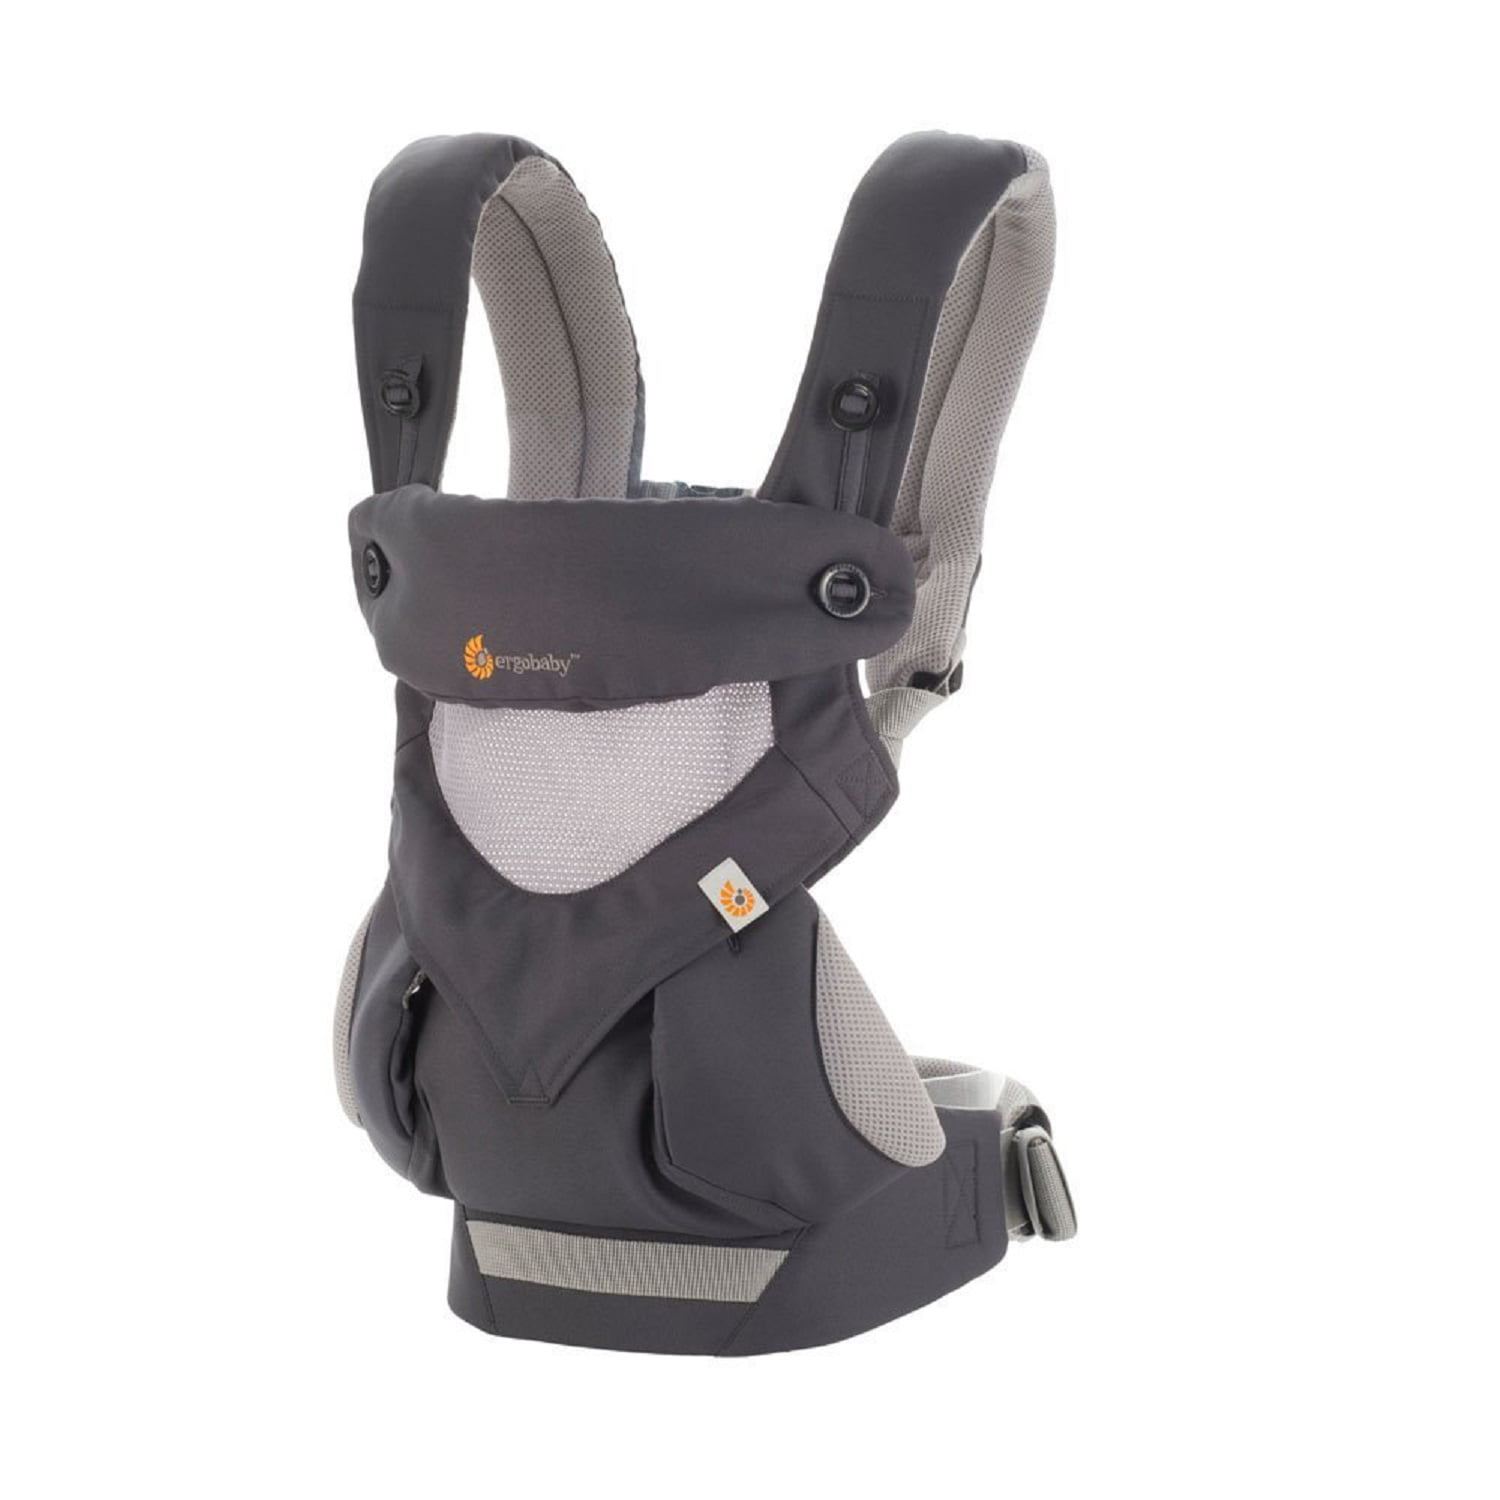 Ergobaby 360 All Carry Position Ergonomic Baby Carrier-Grey by Ergo Baby